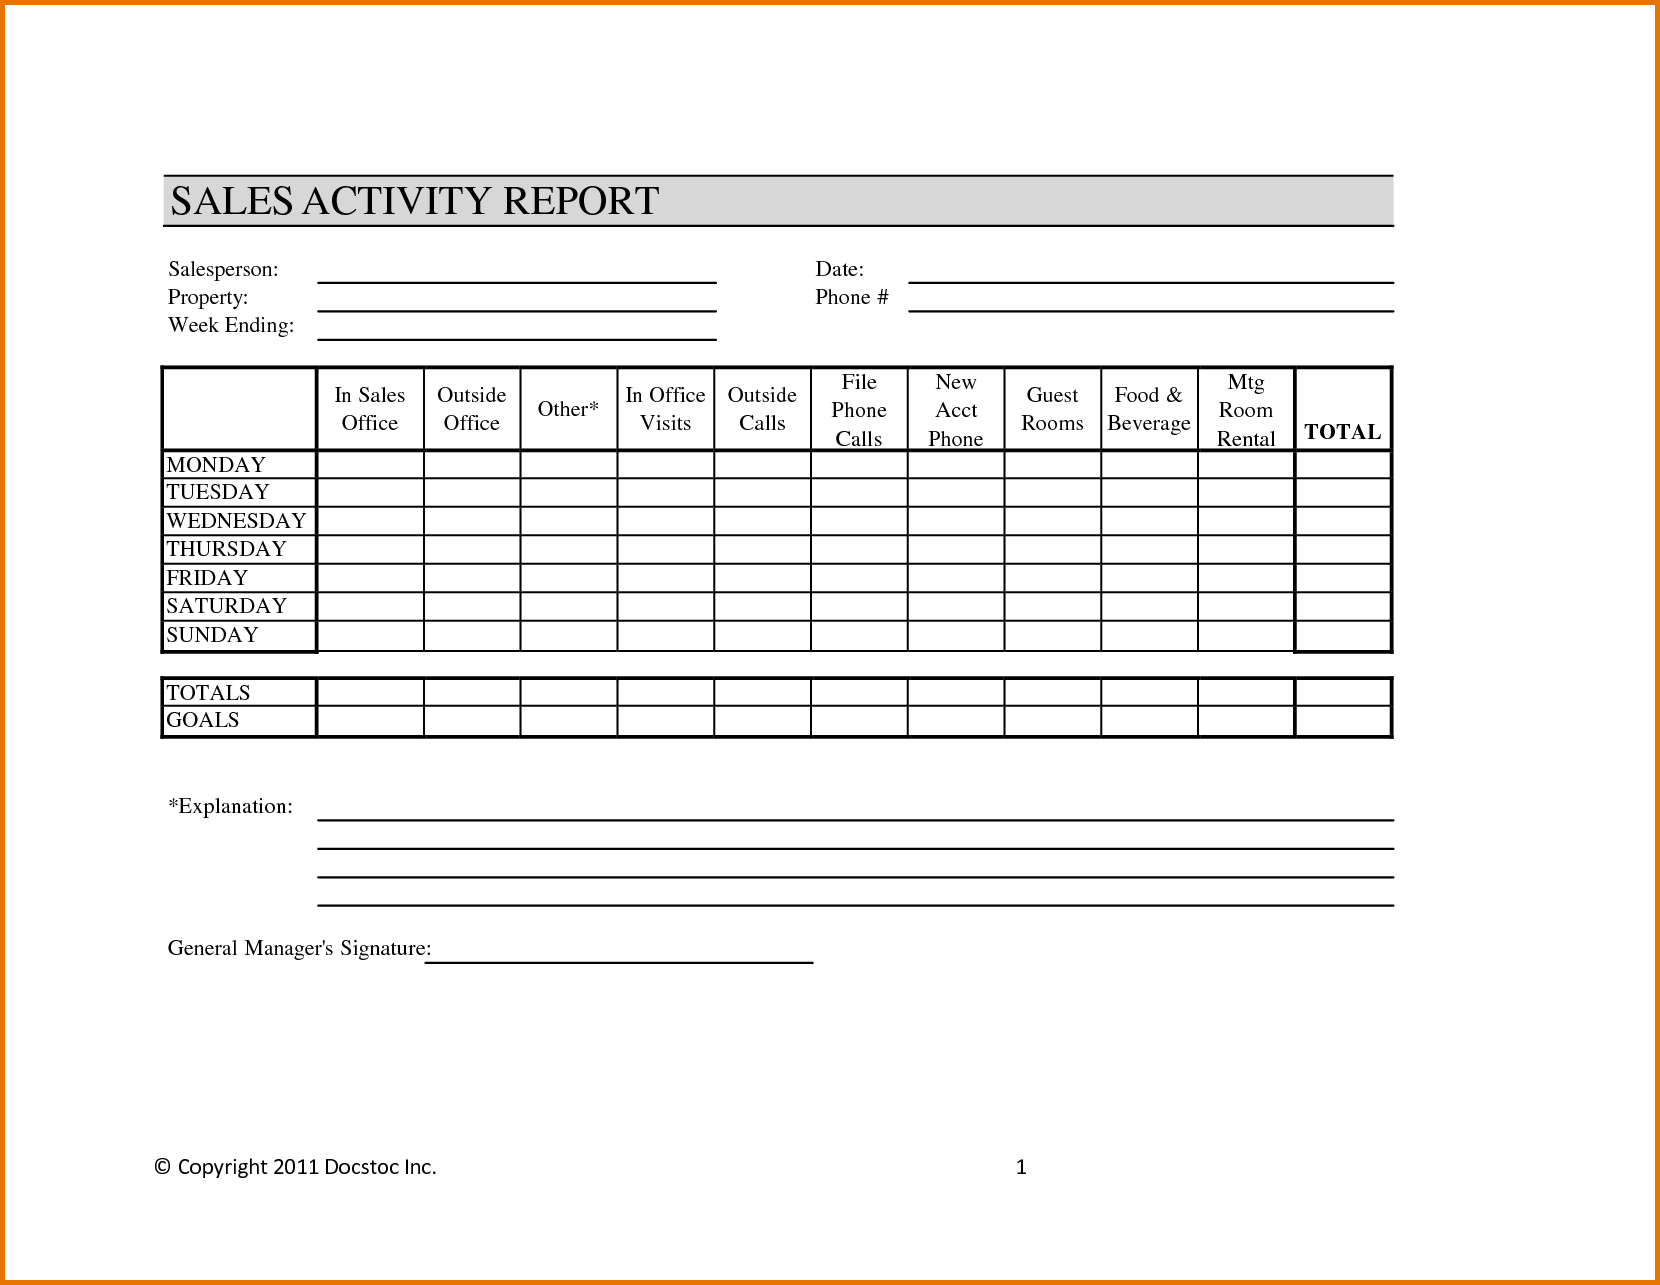 Sales Reporting Templates and Weekly Sales Activity Report Sample